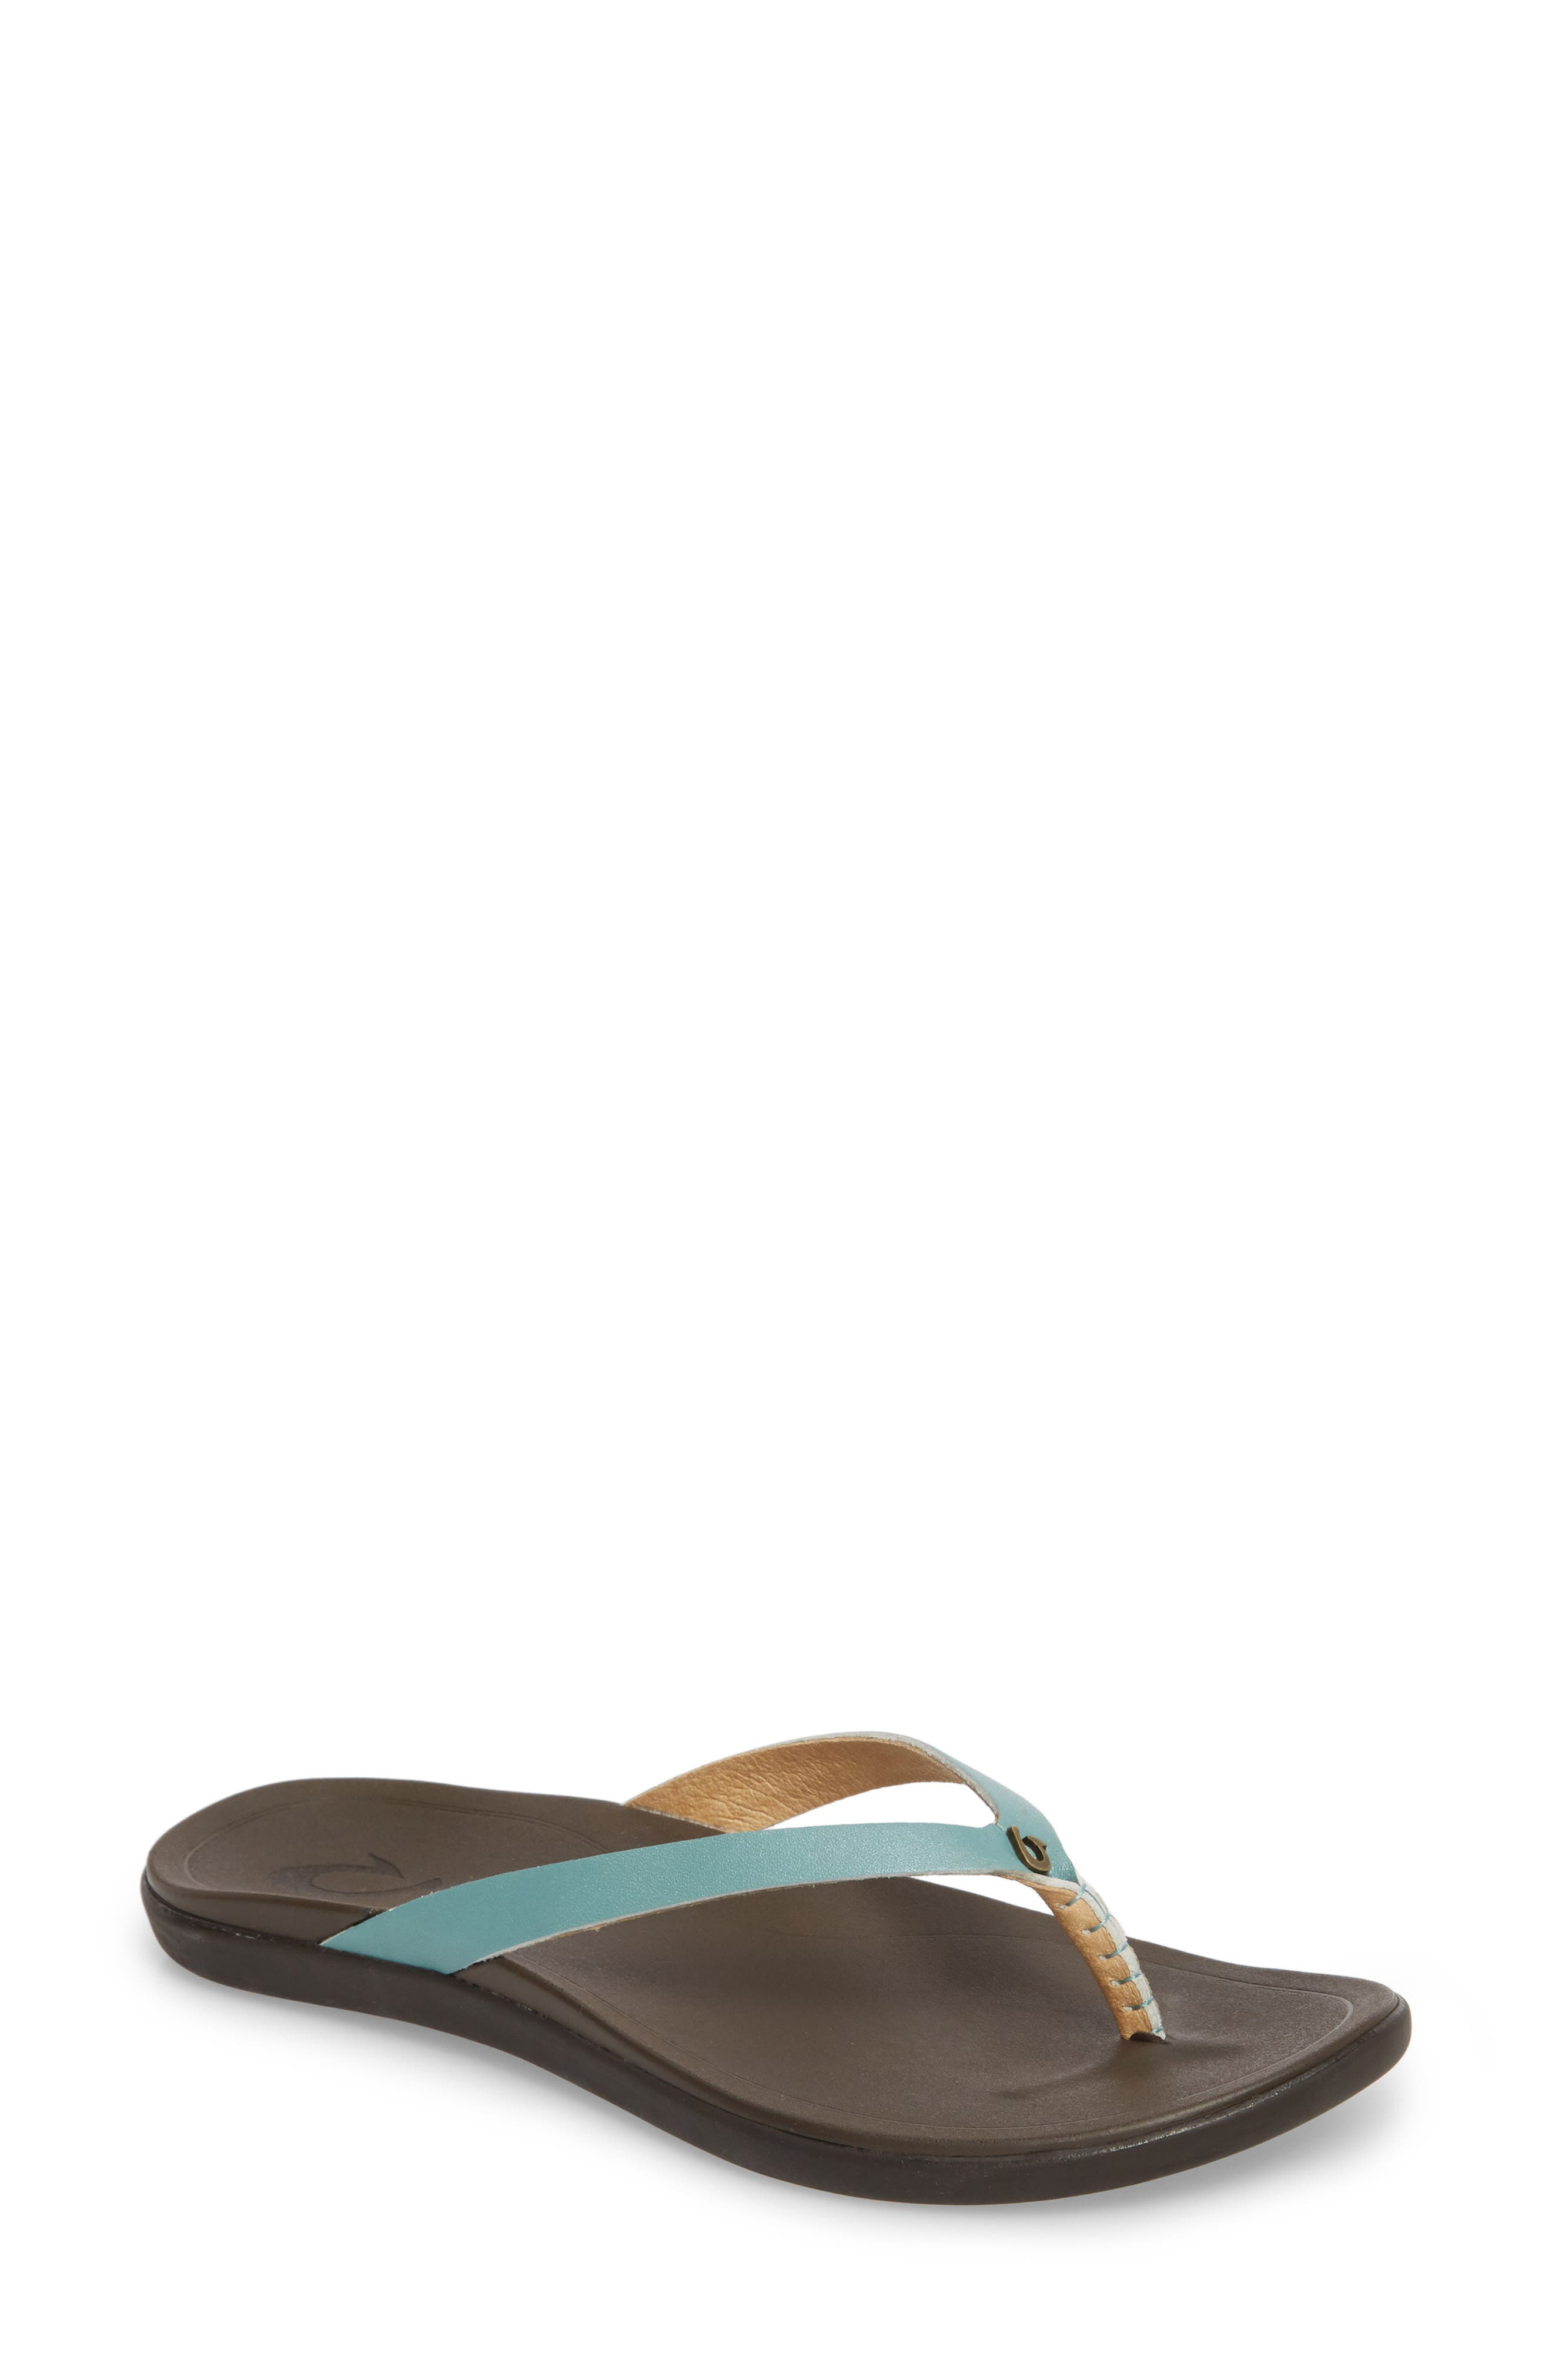 'Ho Opio' Leather Flip Flop,                             Main thumbnail 1, color,                             MINERAL BLUE/ DARK JAVA